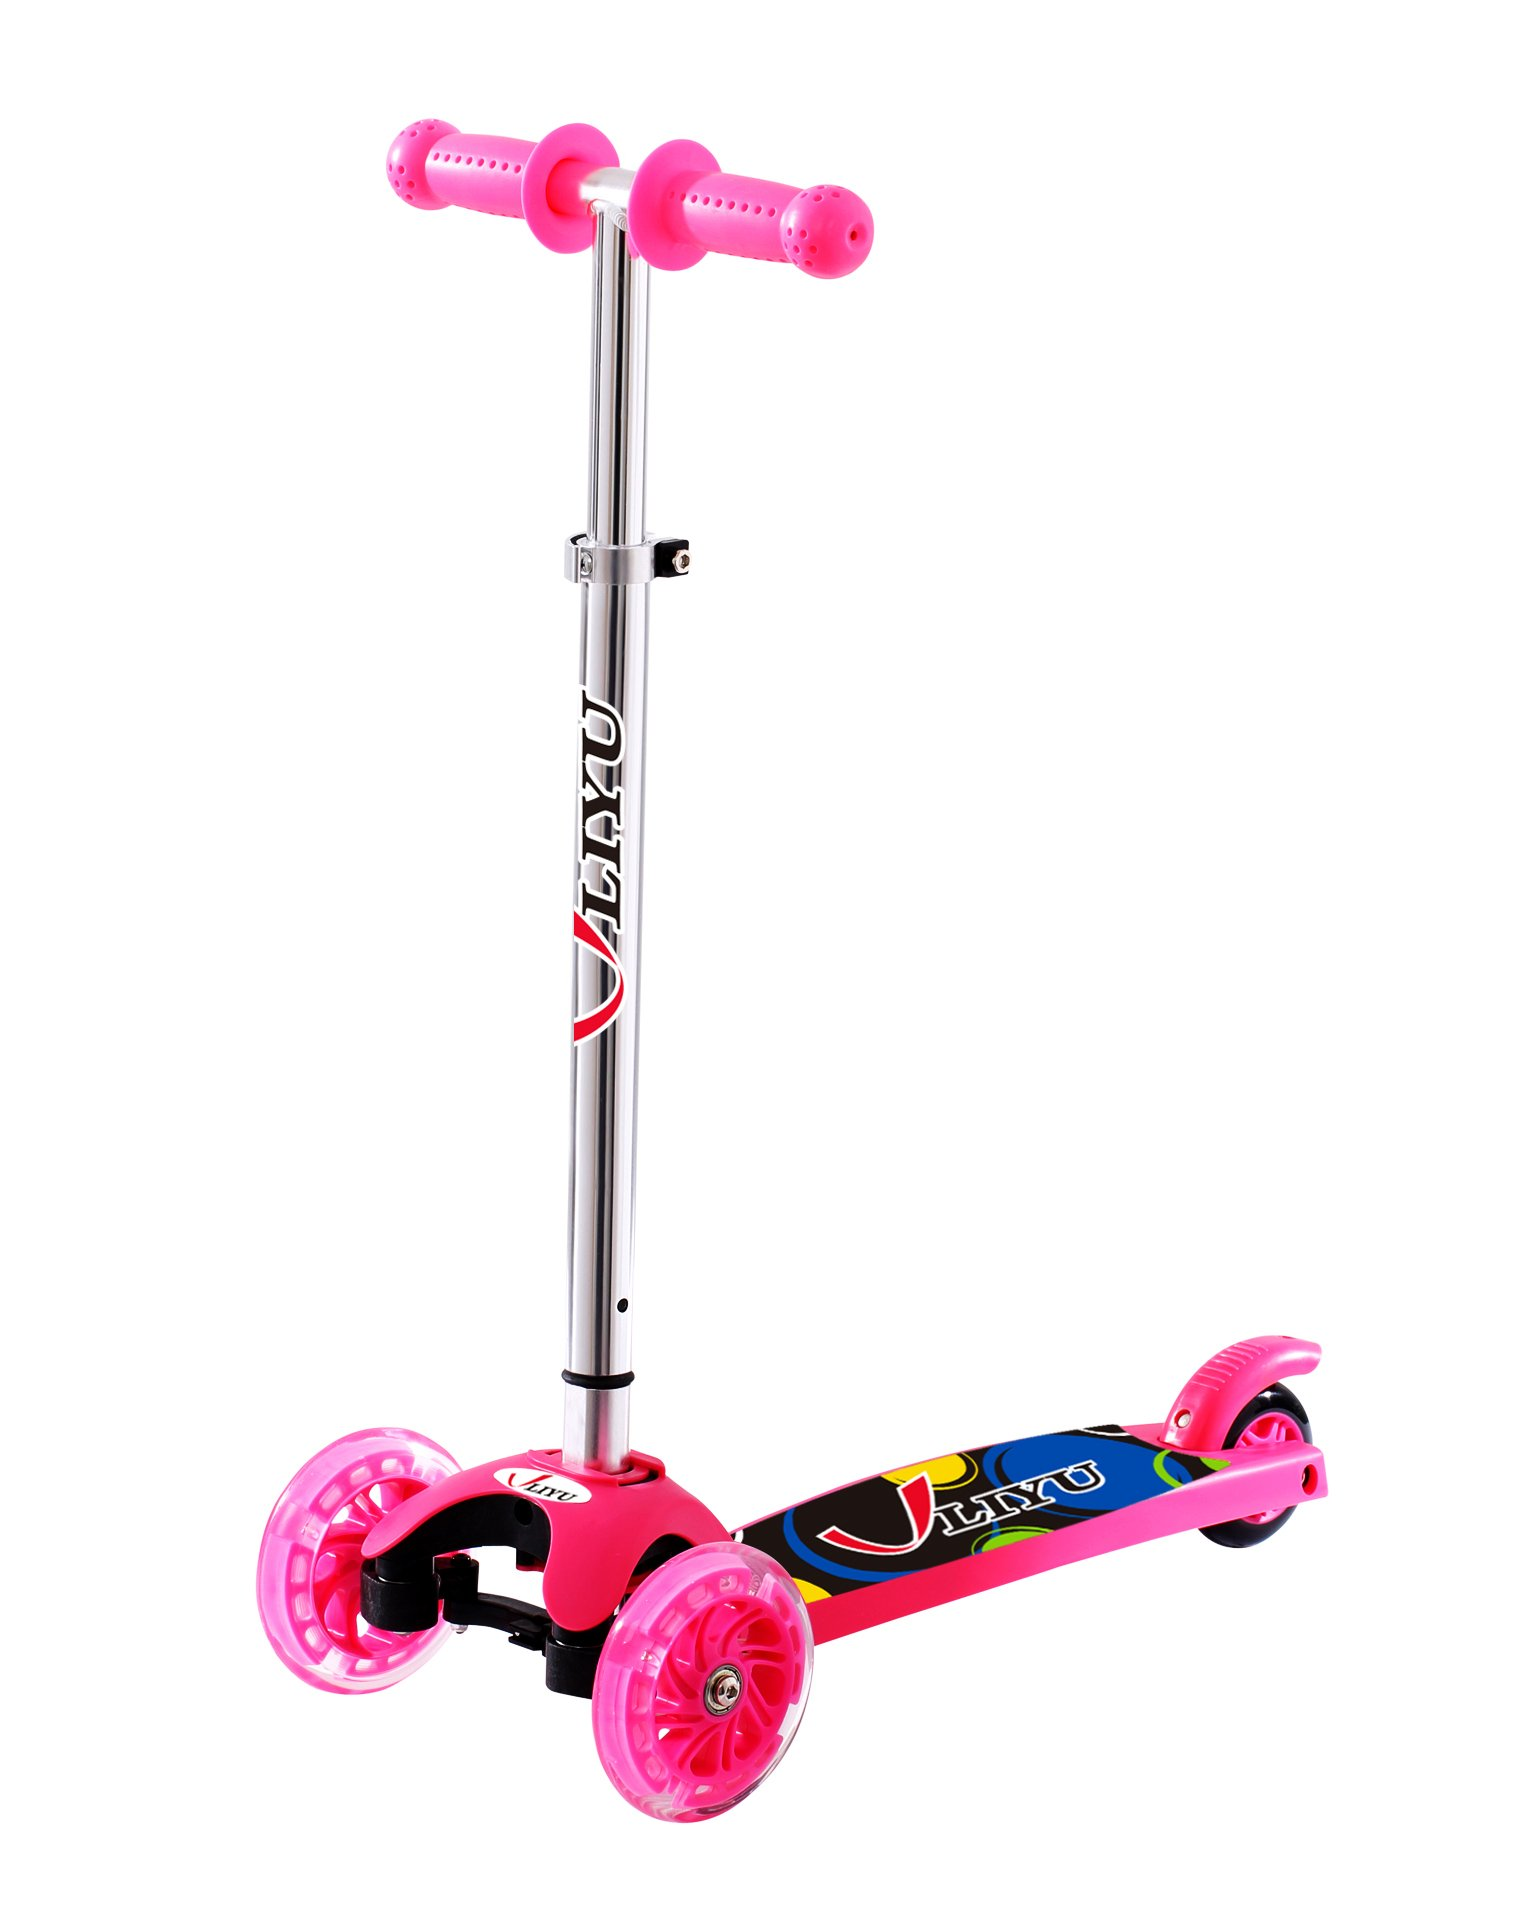 1281F Mini Children Scooters 3 Wheels Micro Kick Scooter pink with Flashing Wheel for kids by LIYU立宇